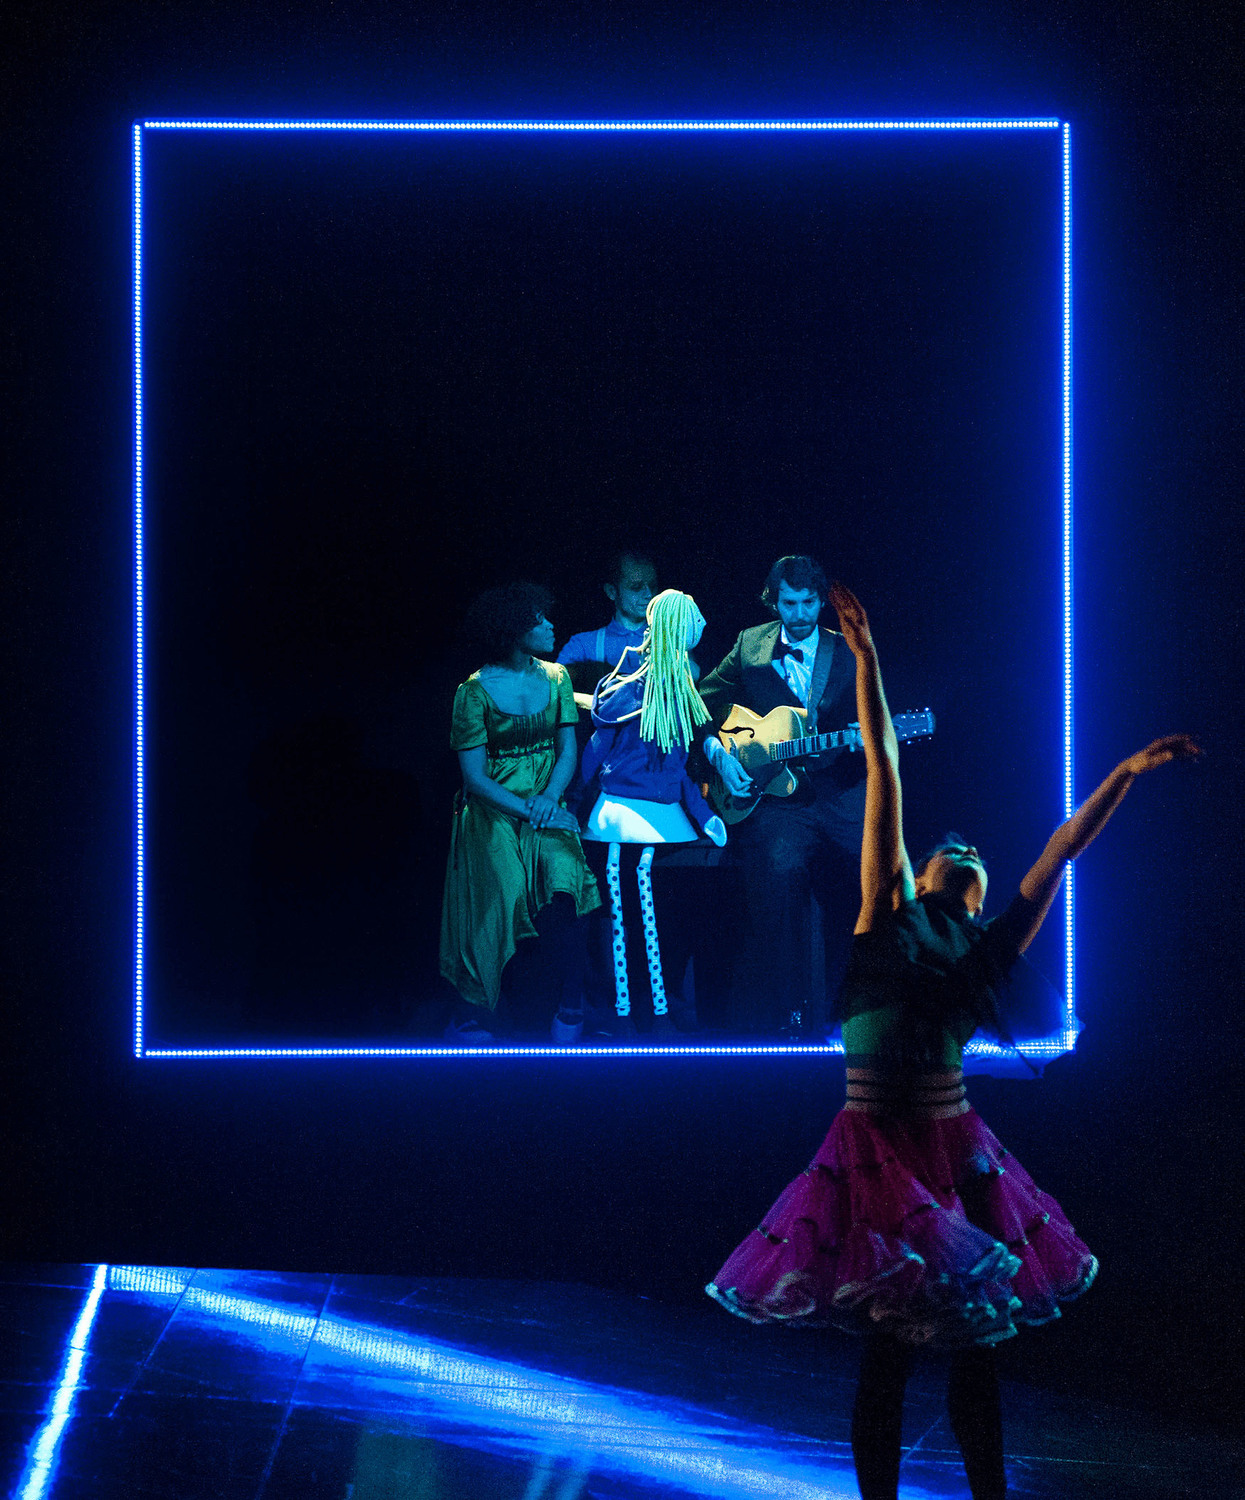 In a blue box frame at the back of the photo a teenage puppet girl sits with a guitarist and 2 performers, in the foreground a dancer moves to the music